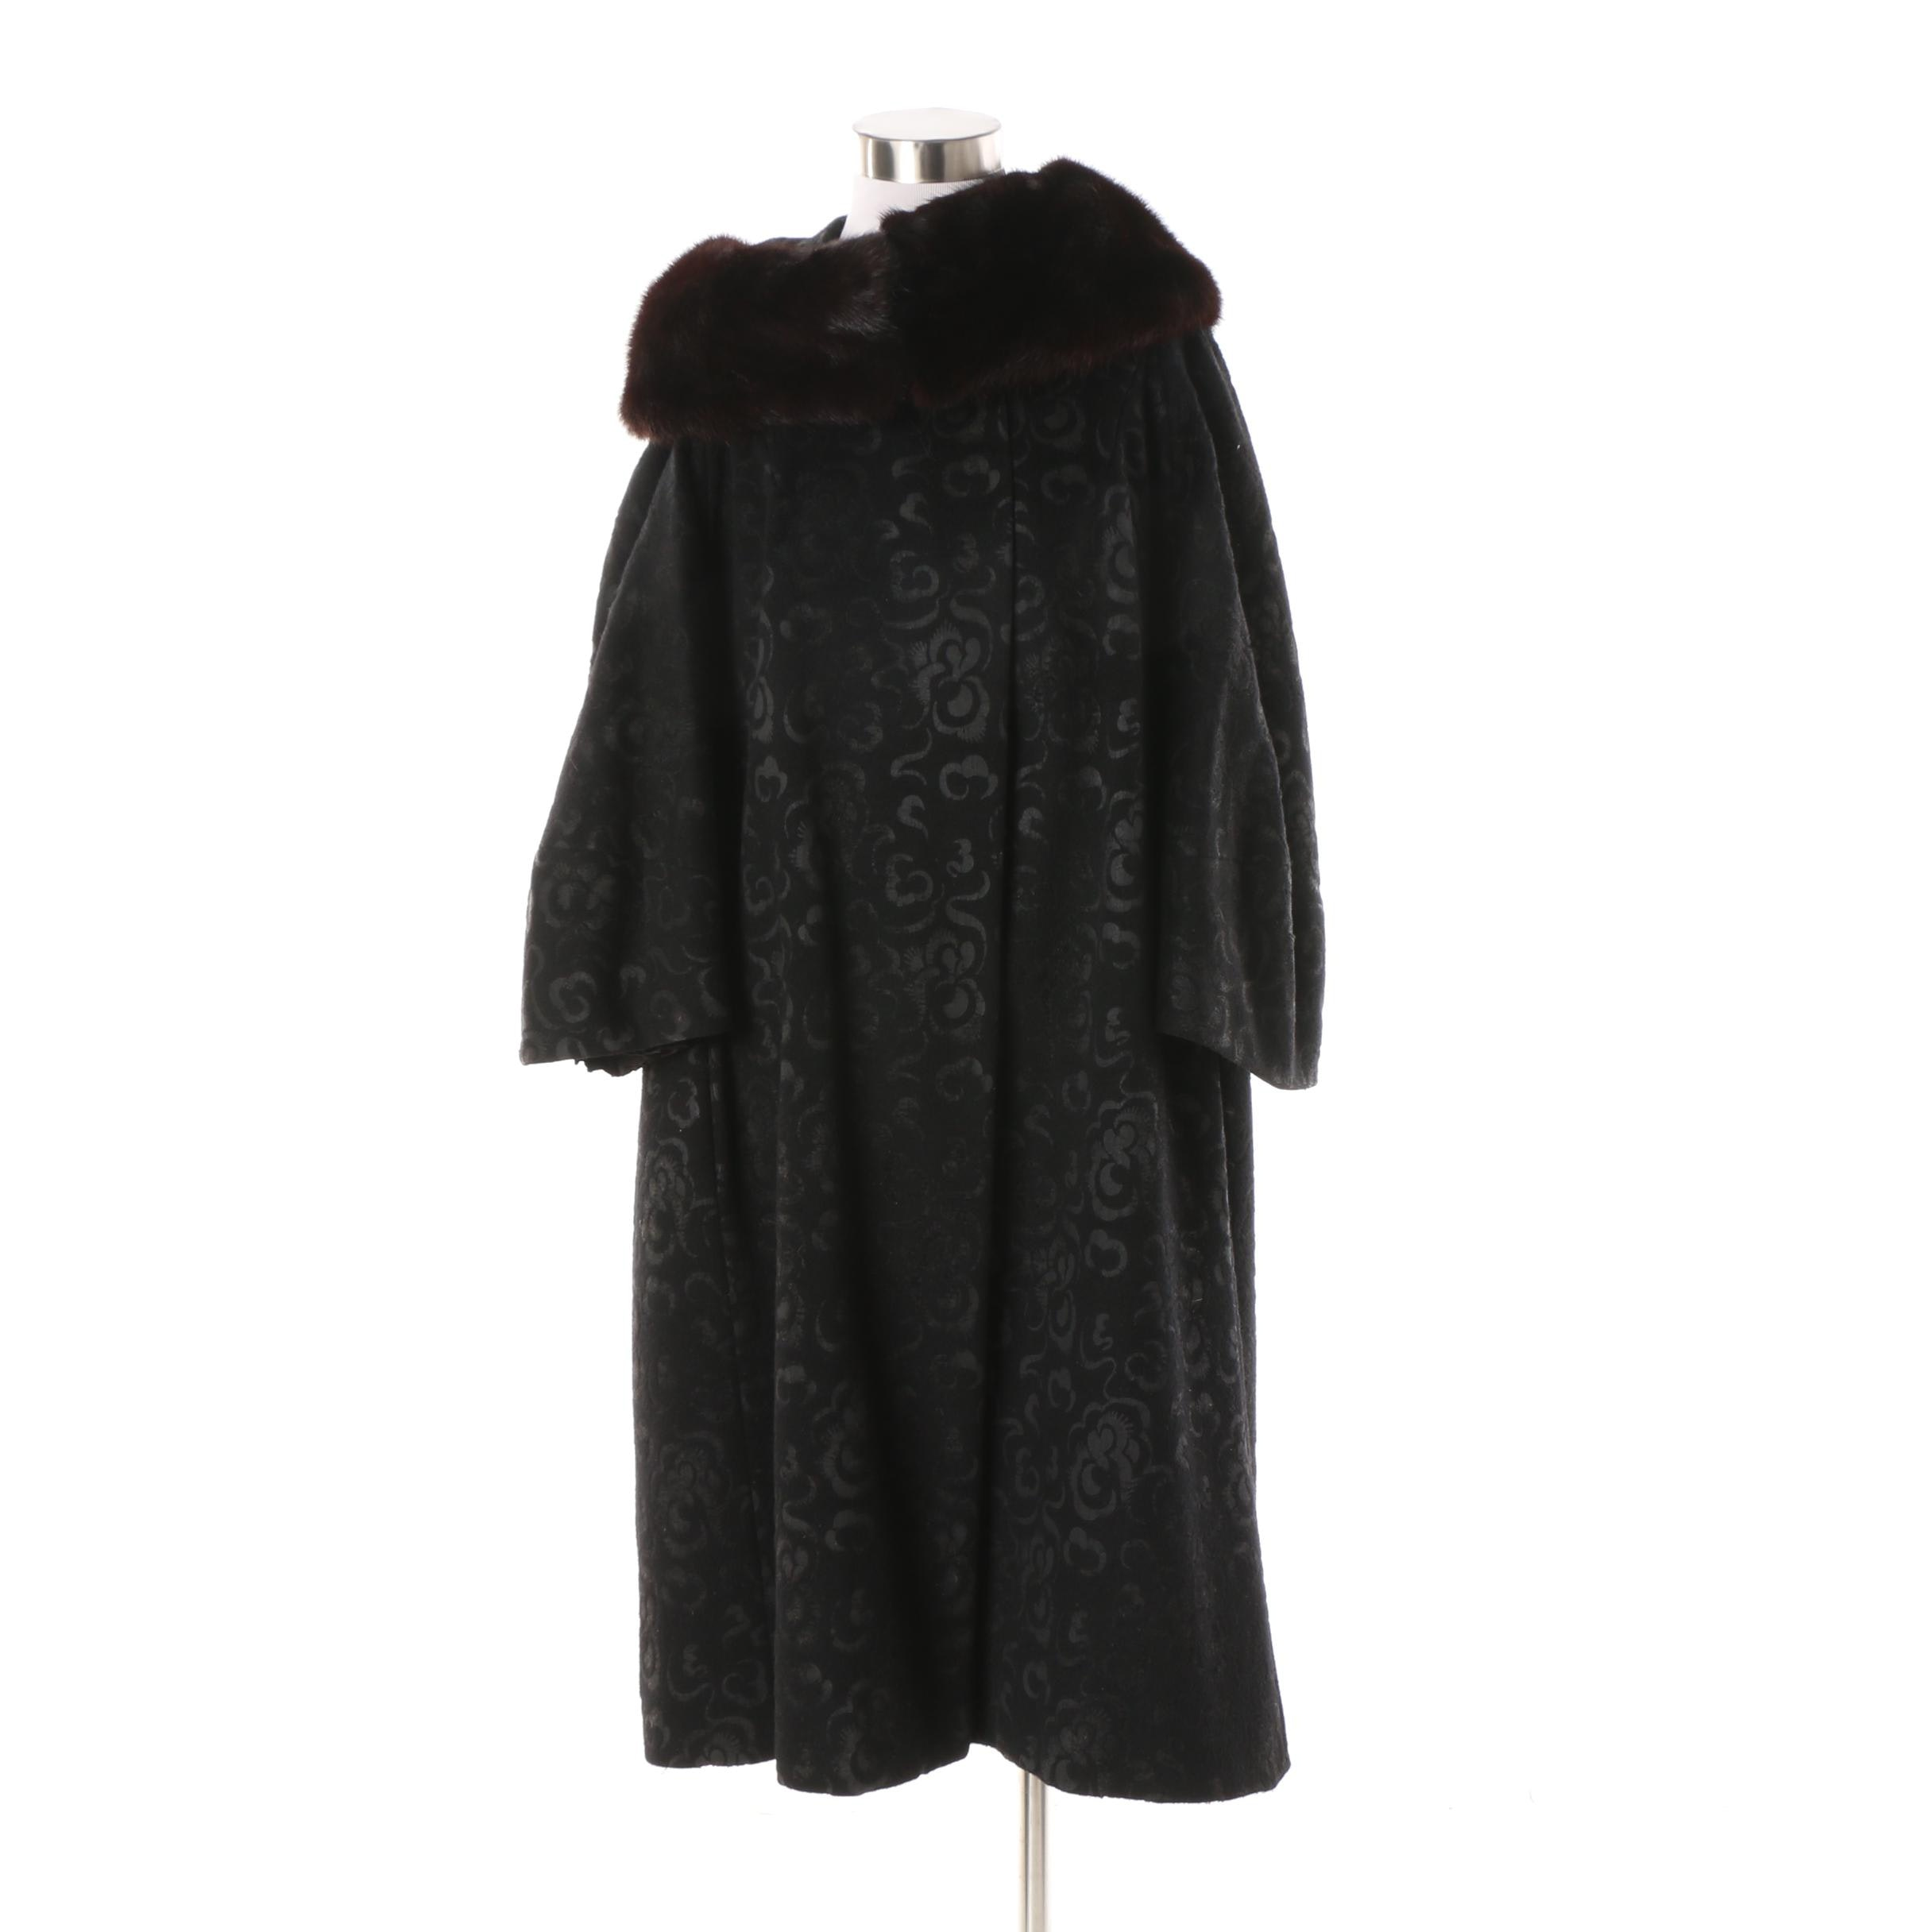 Vintage Blin & Blin Black Floral Stenciled Wool Coat with Mink Fur Collar